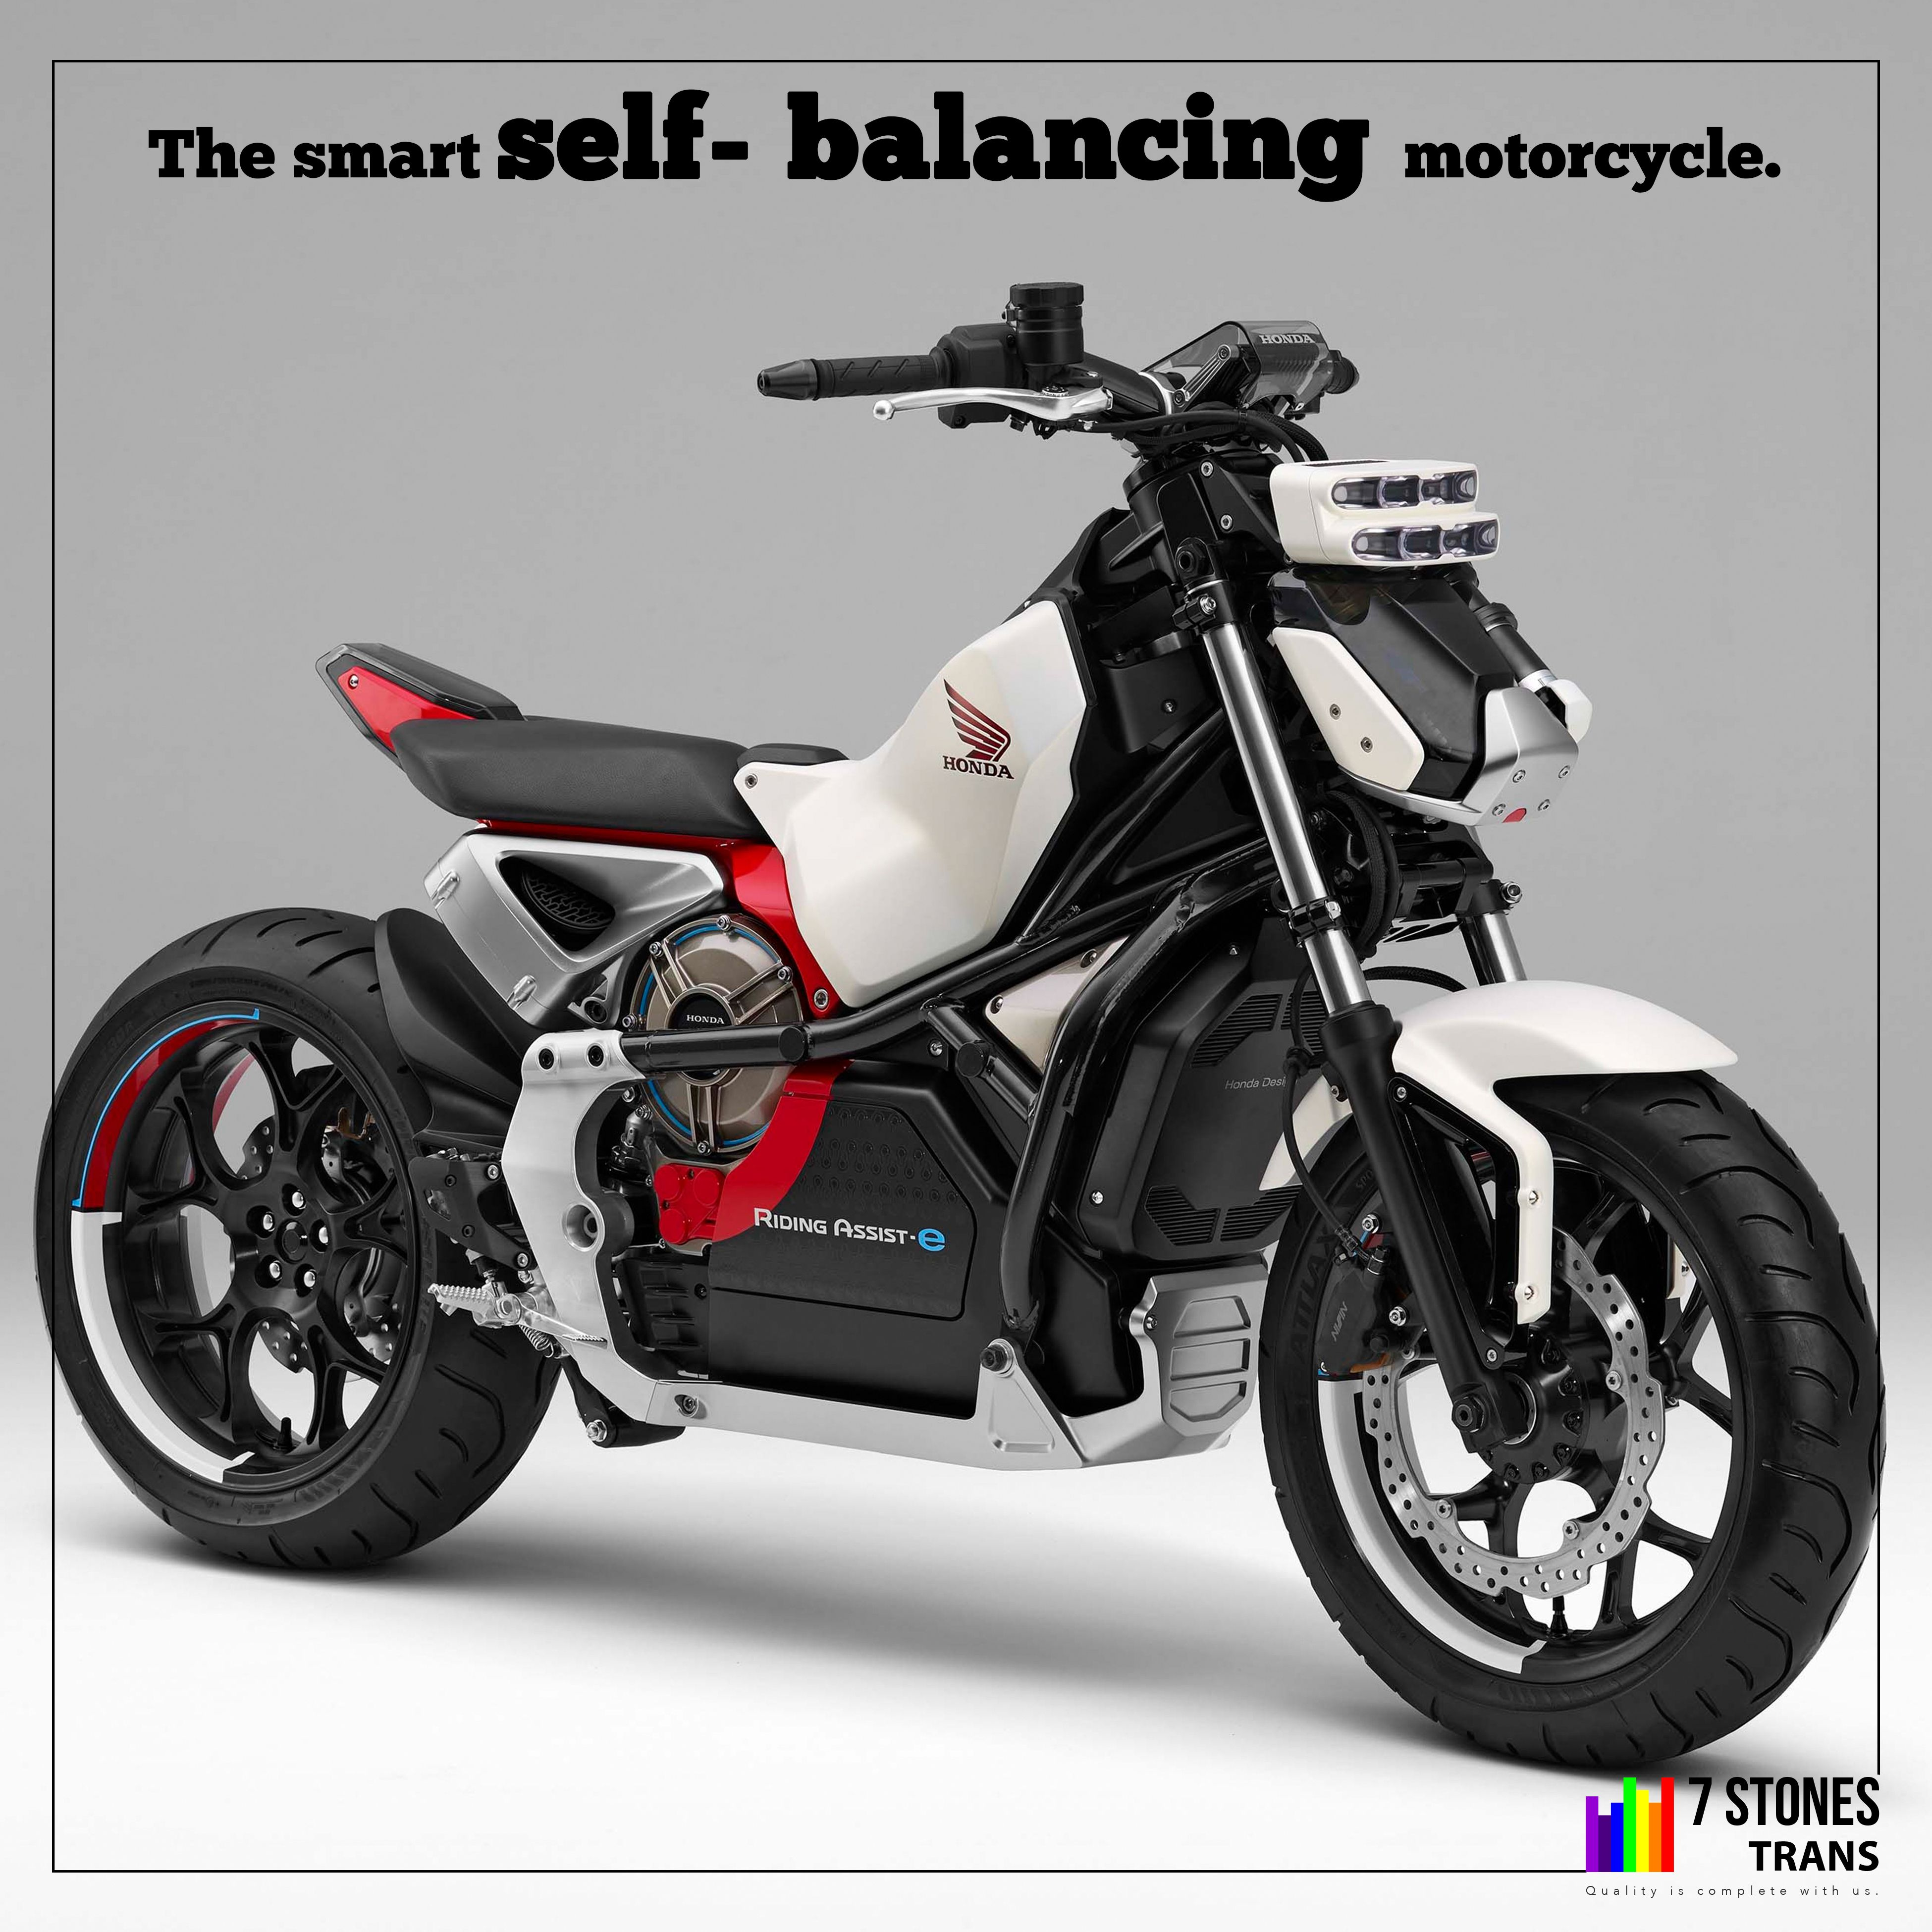 A self-riding vehicle unveiled by Honda. And this technology can reduce accident and lessen the possibility of falling over when the bike is at rest. The Moto Riding assist #7ST #transportation #transportationsystem #vehicle #twowheeler #selfbalancing #hondatwowheeler #motoriding #hondavehicles #balancingmotorcycle